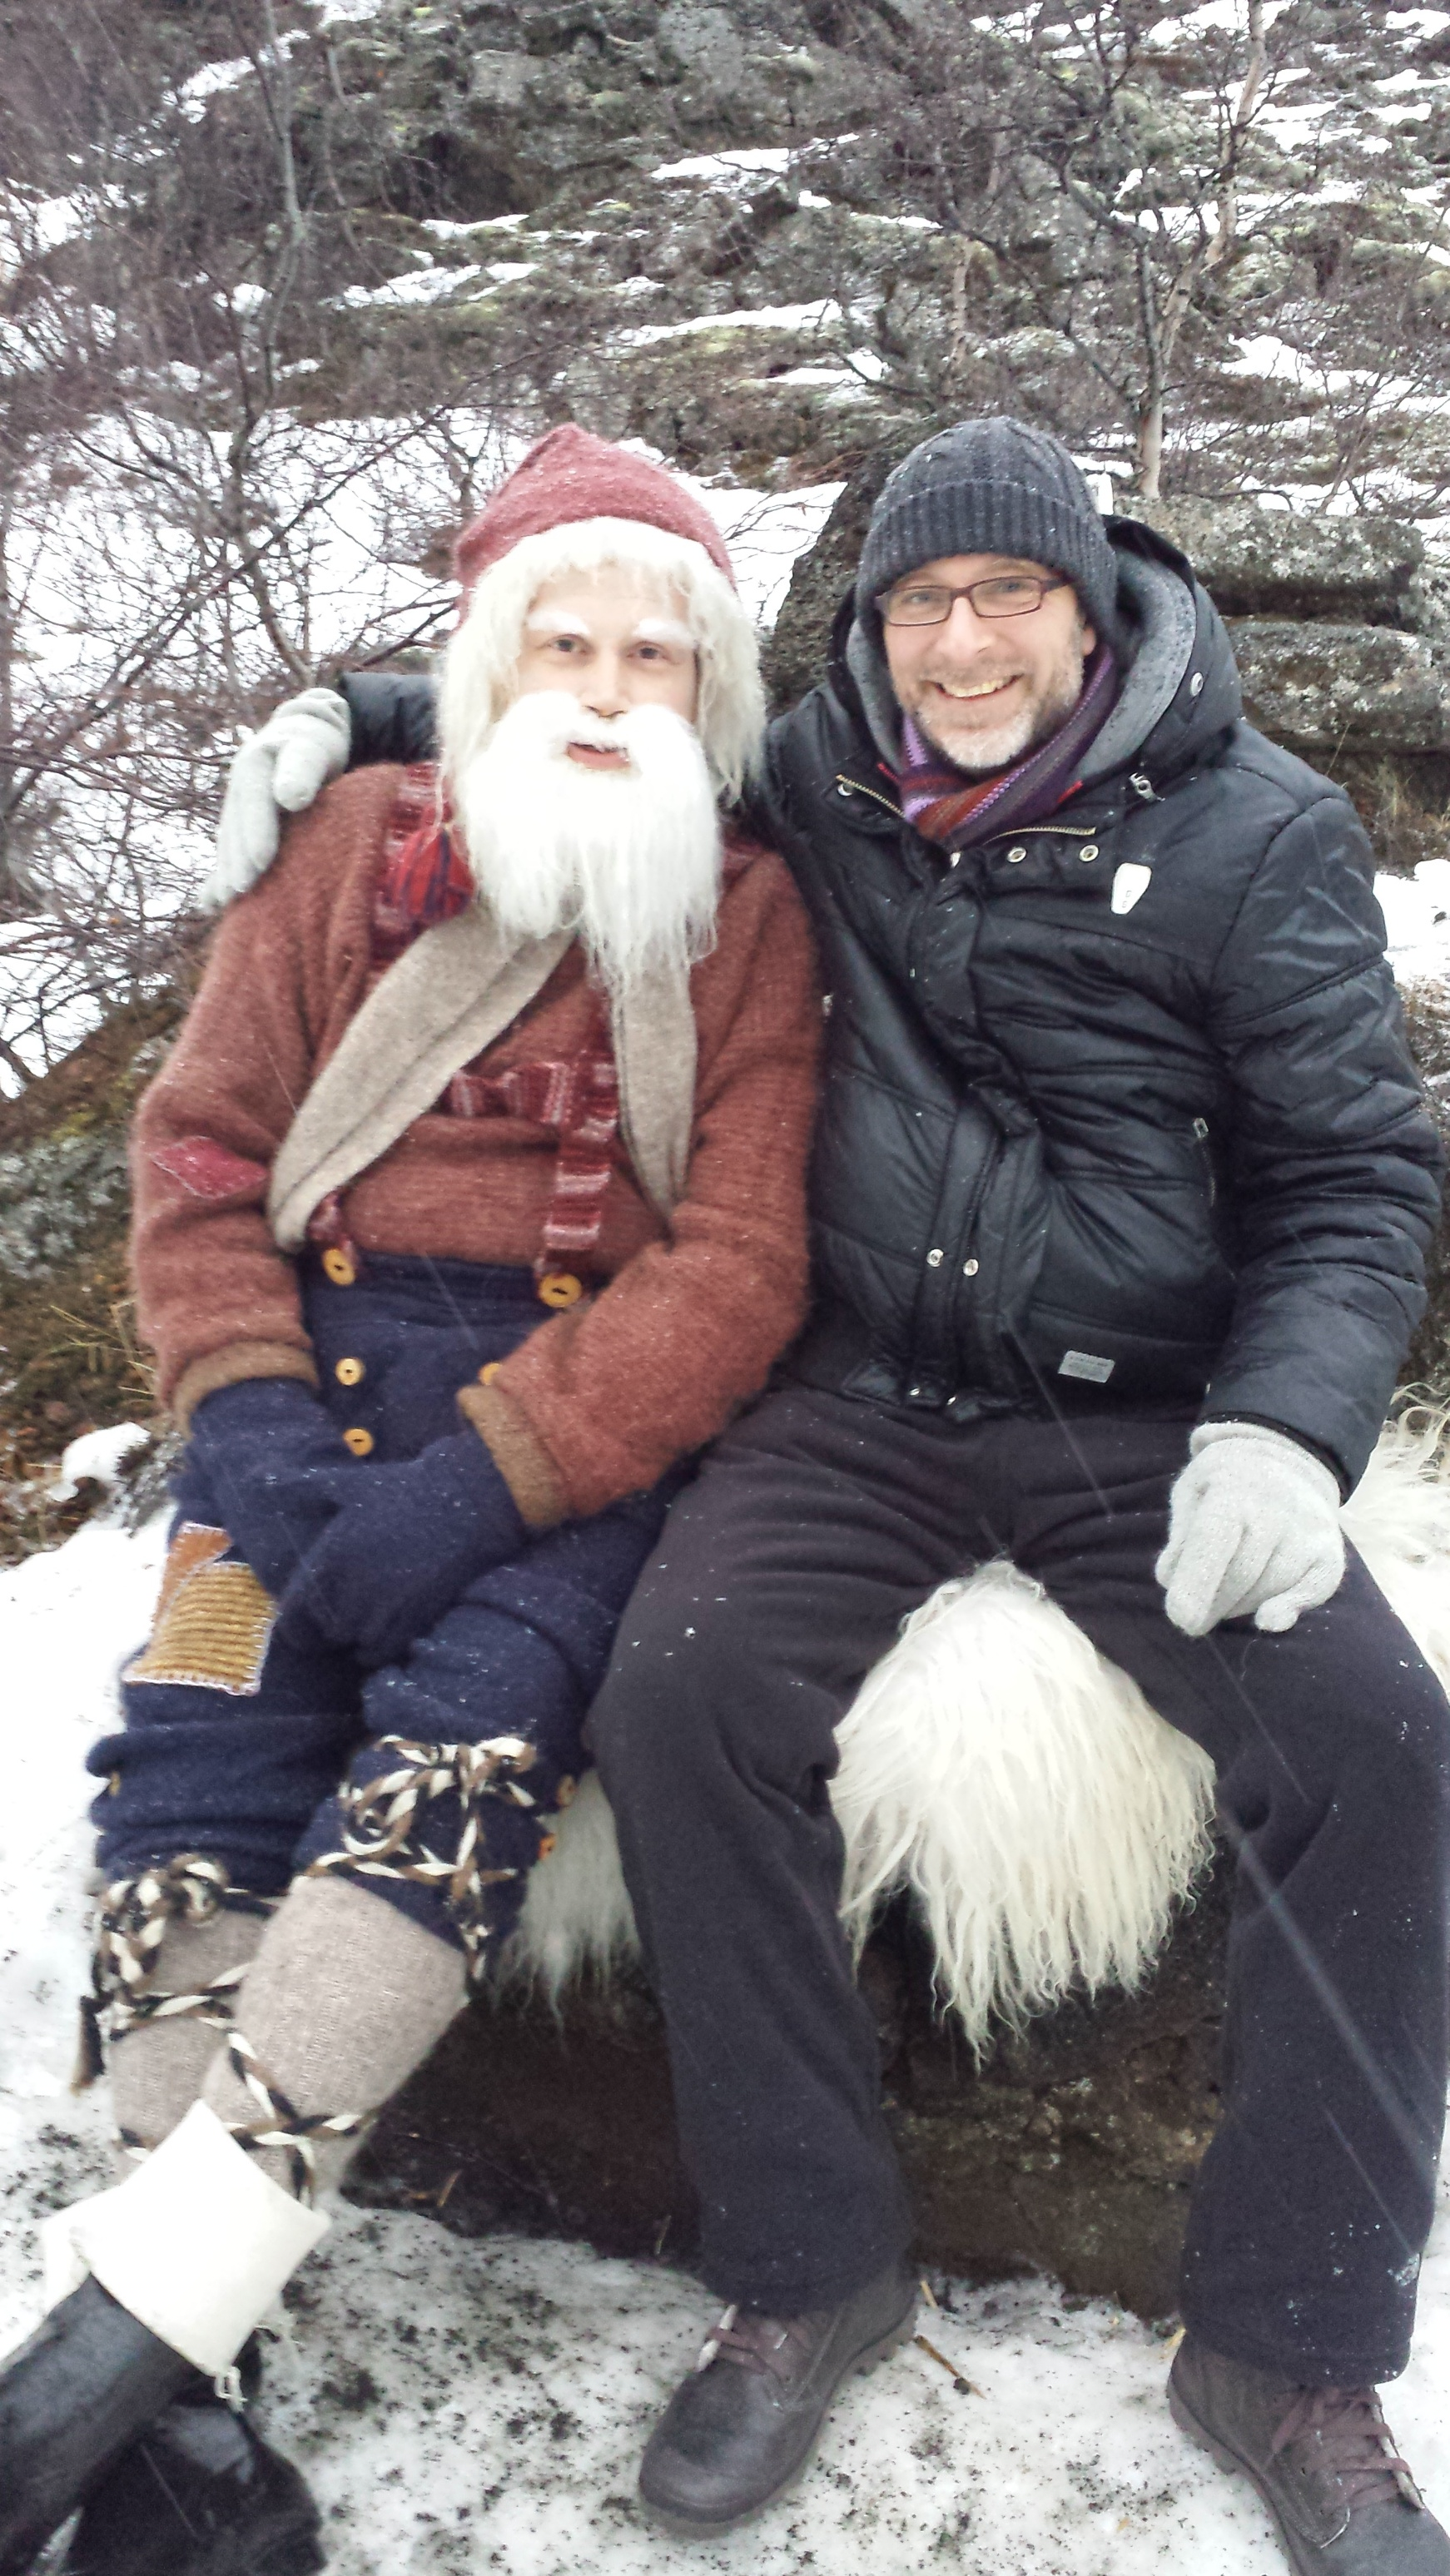 Meet Stekkjarstaur, a.k.a. Gimpy, and my travel buddy, Chris. What an incredible surprise to stumble into a Yule Lad hiking in a lava field in the north of Iceland!